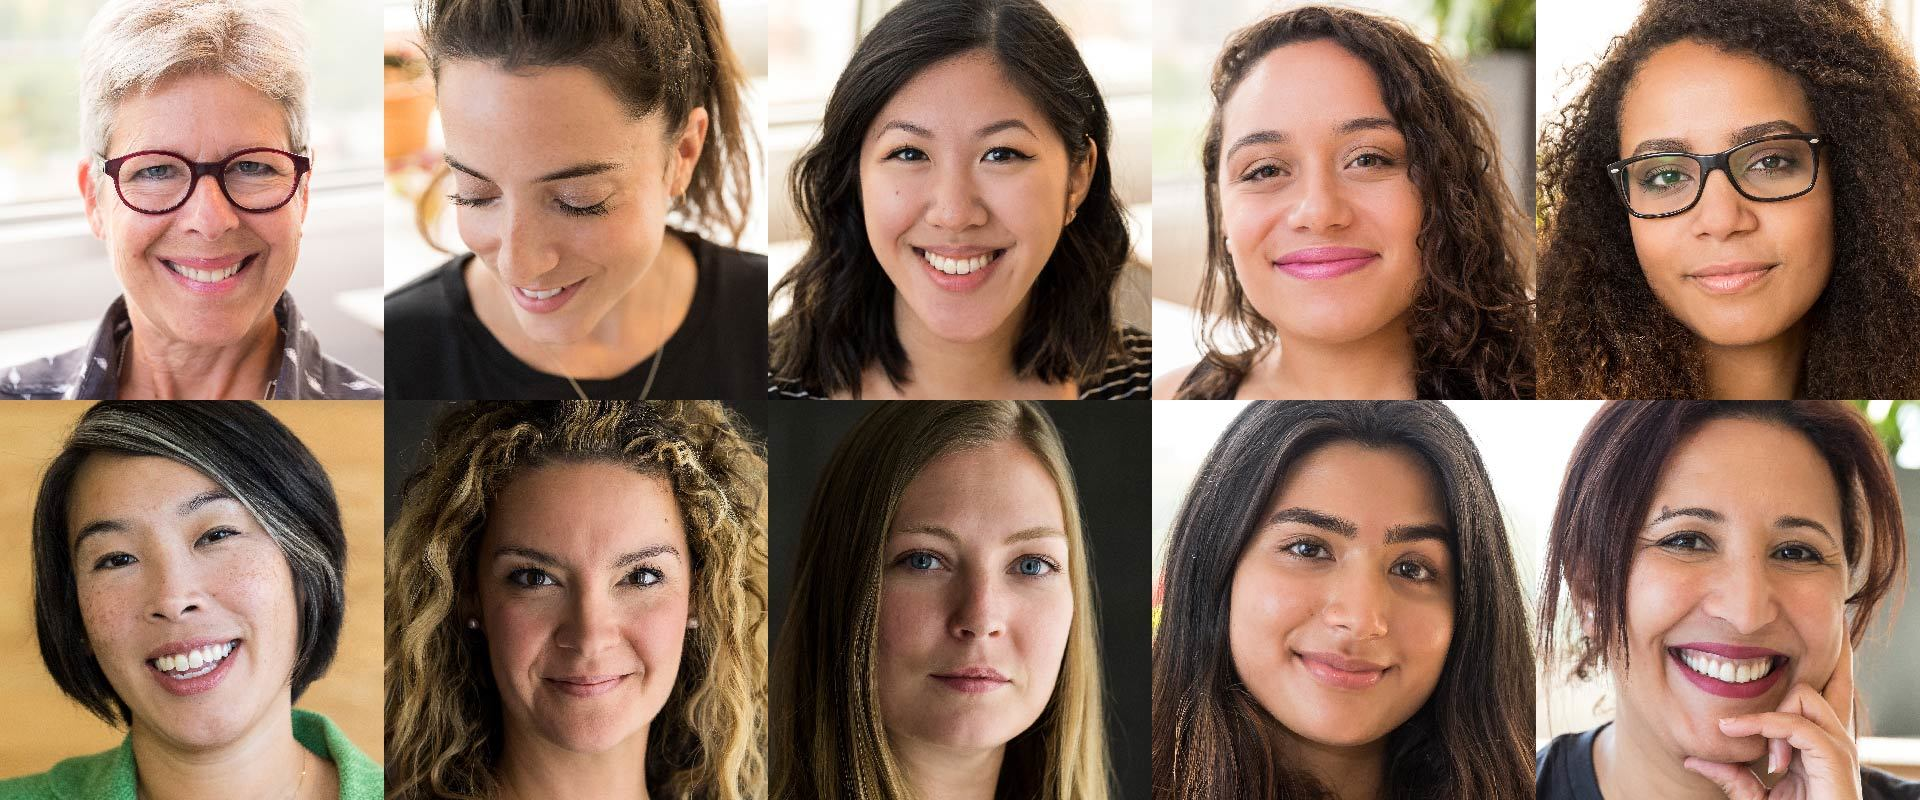 Grace Hopper Celebration 2018: Element AI promotes women in tech